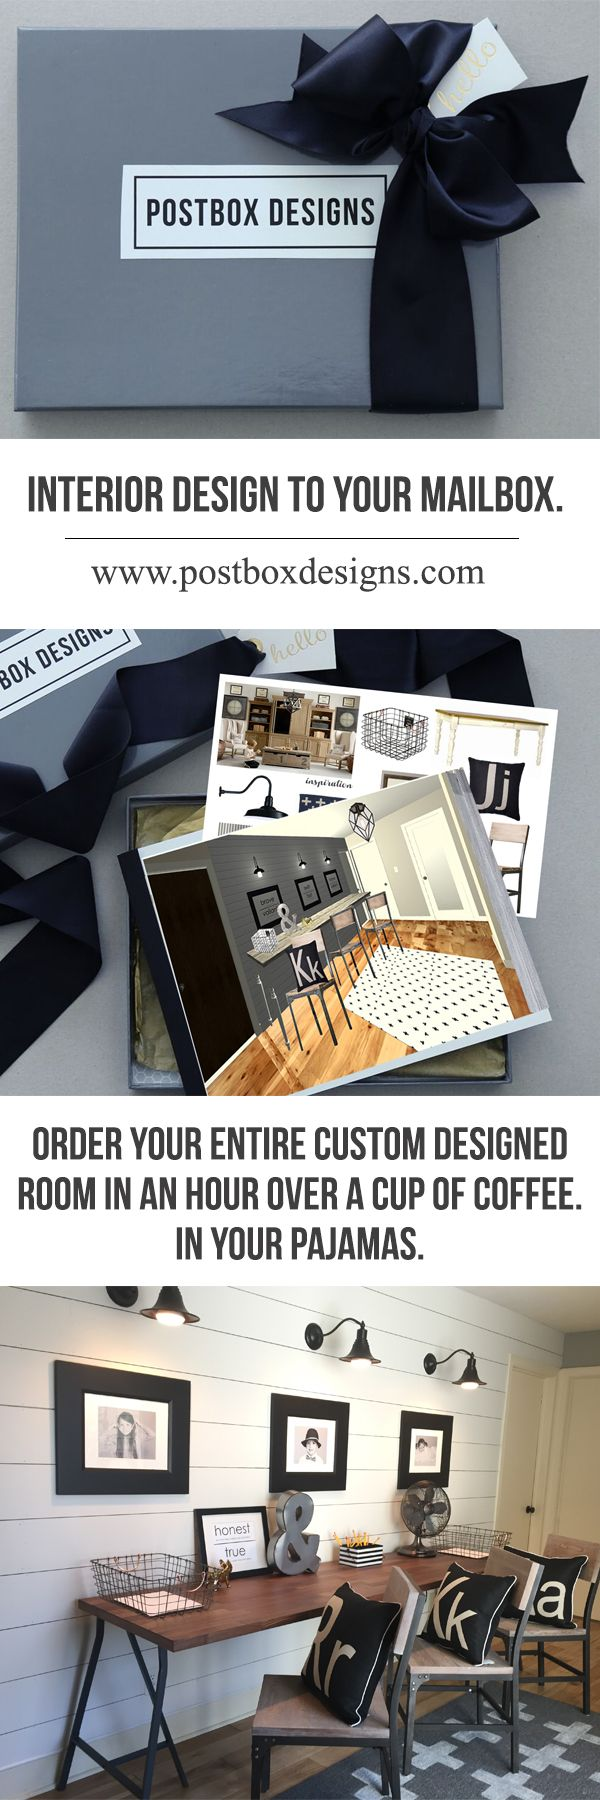 Its Interior Design Straight To Your Mailbox Postbox Designs Is An Affordable Custom